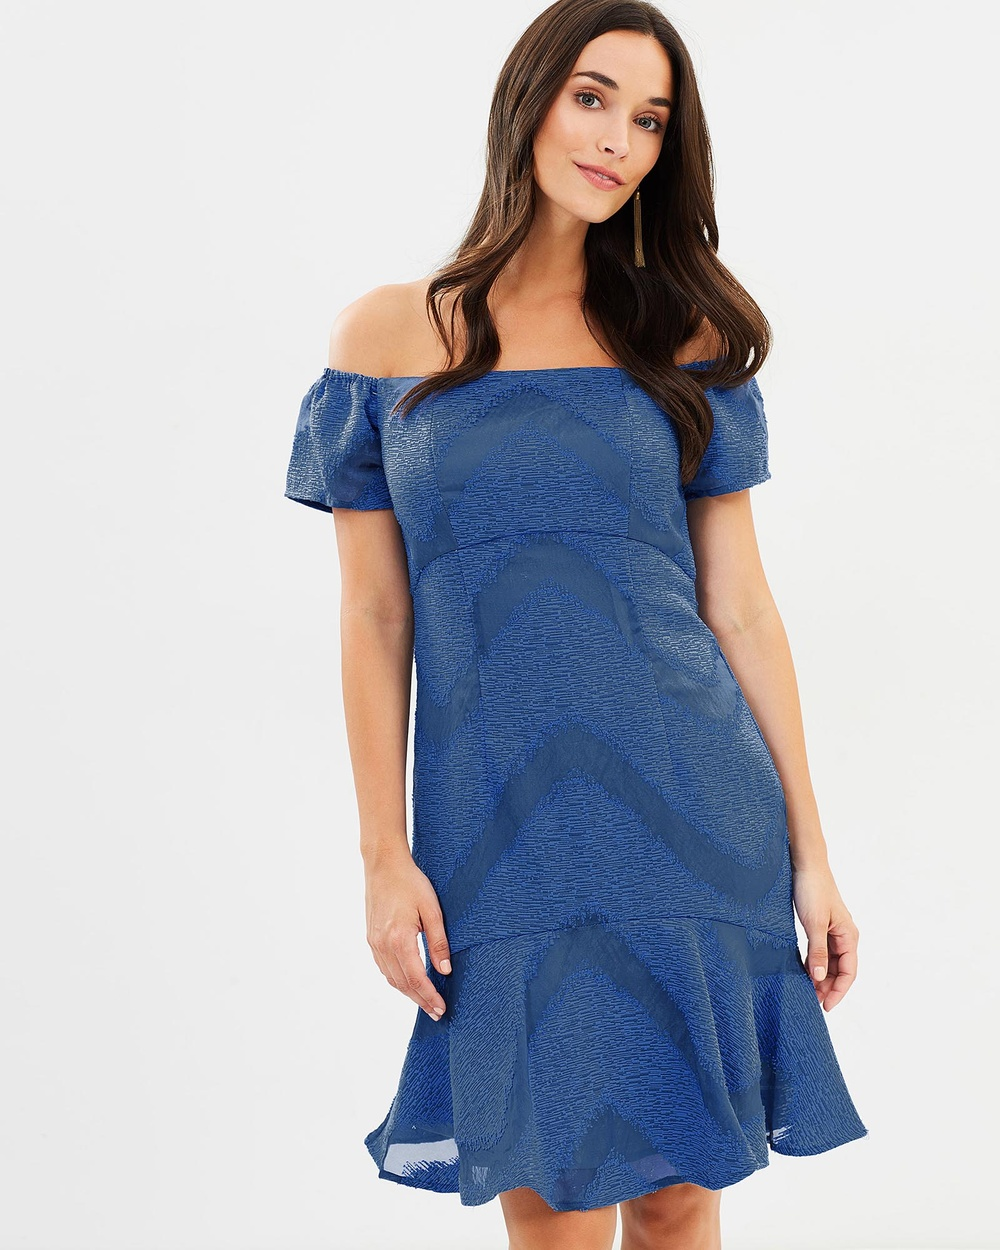 Honey and Beau Moonstruck Flip Dress Dresses Blue Moonstruck Flip Dress